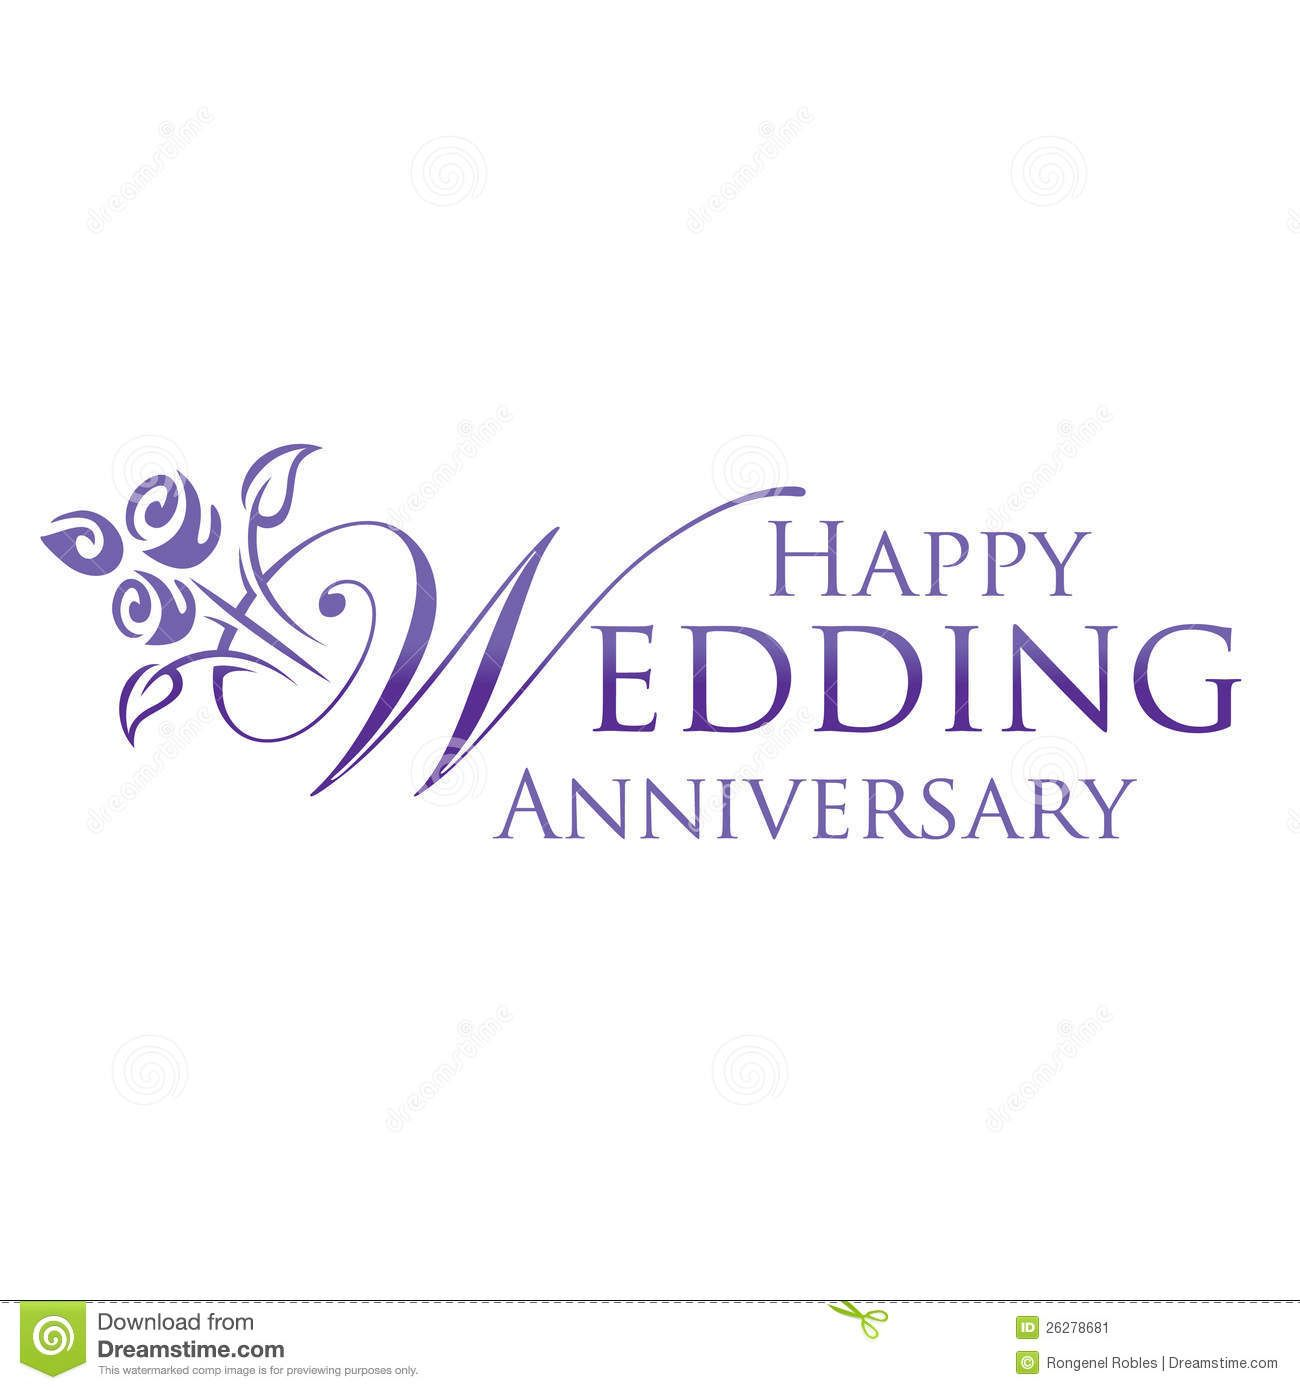 Wedding Wishes In Japanese: Anniversary - Google Search